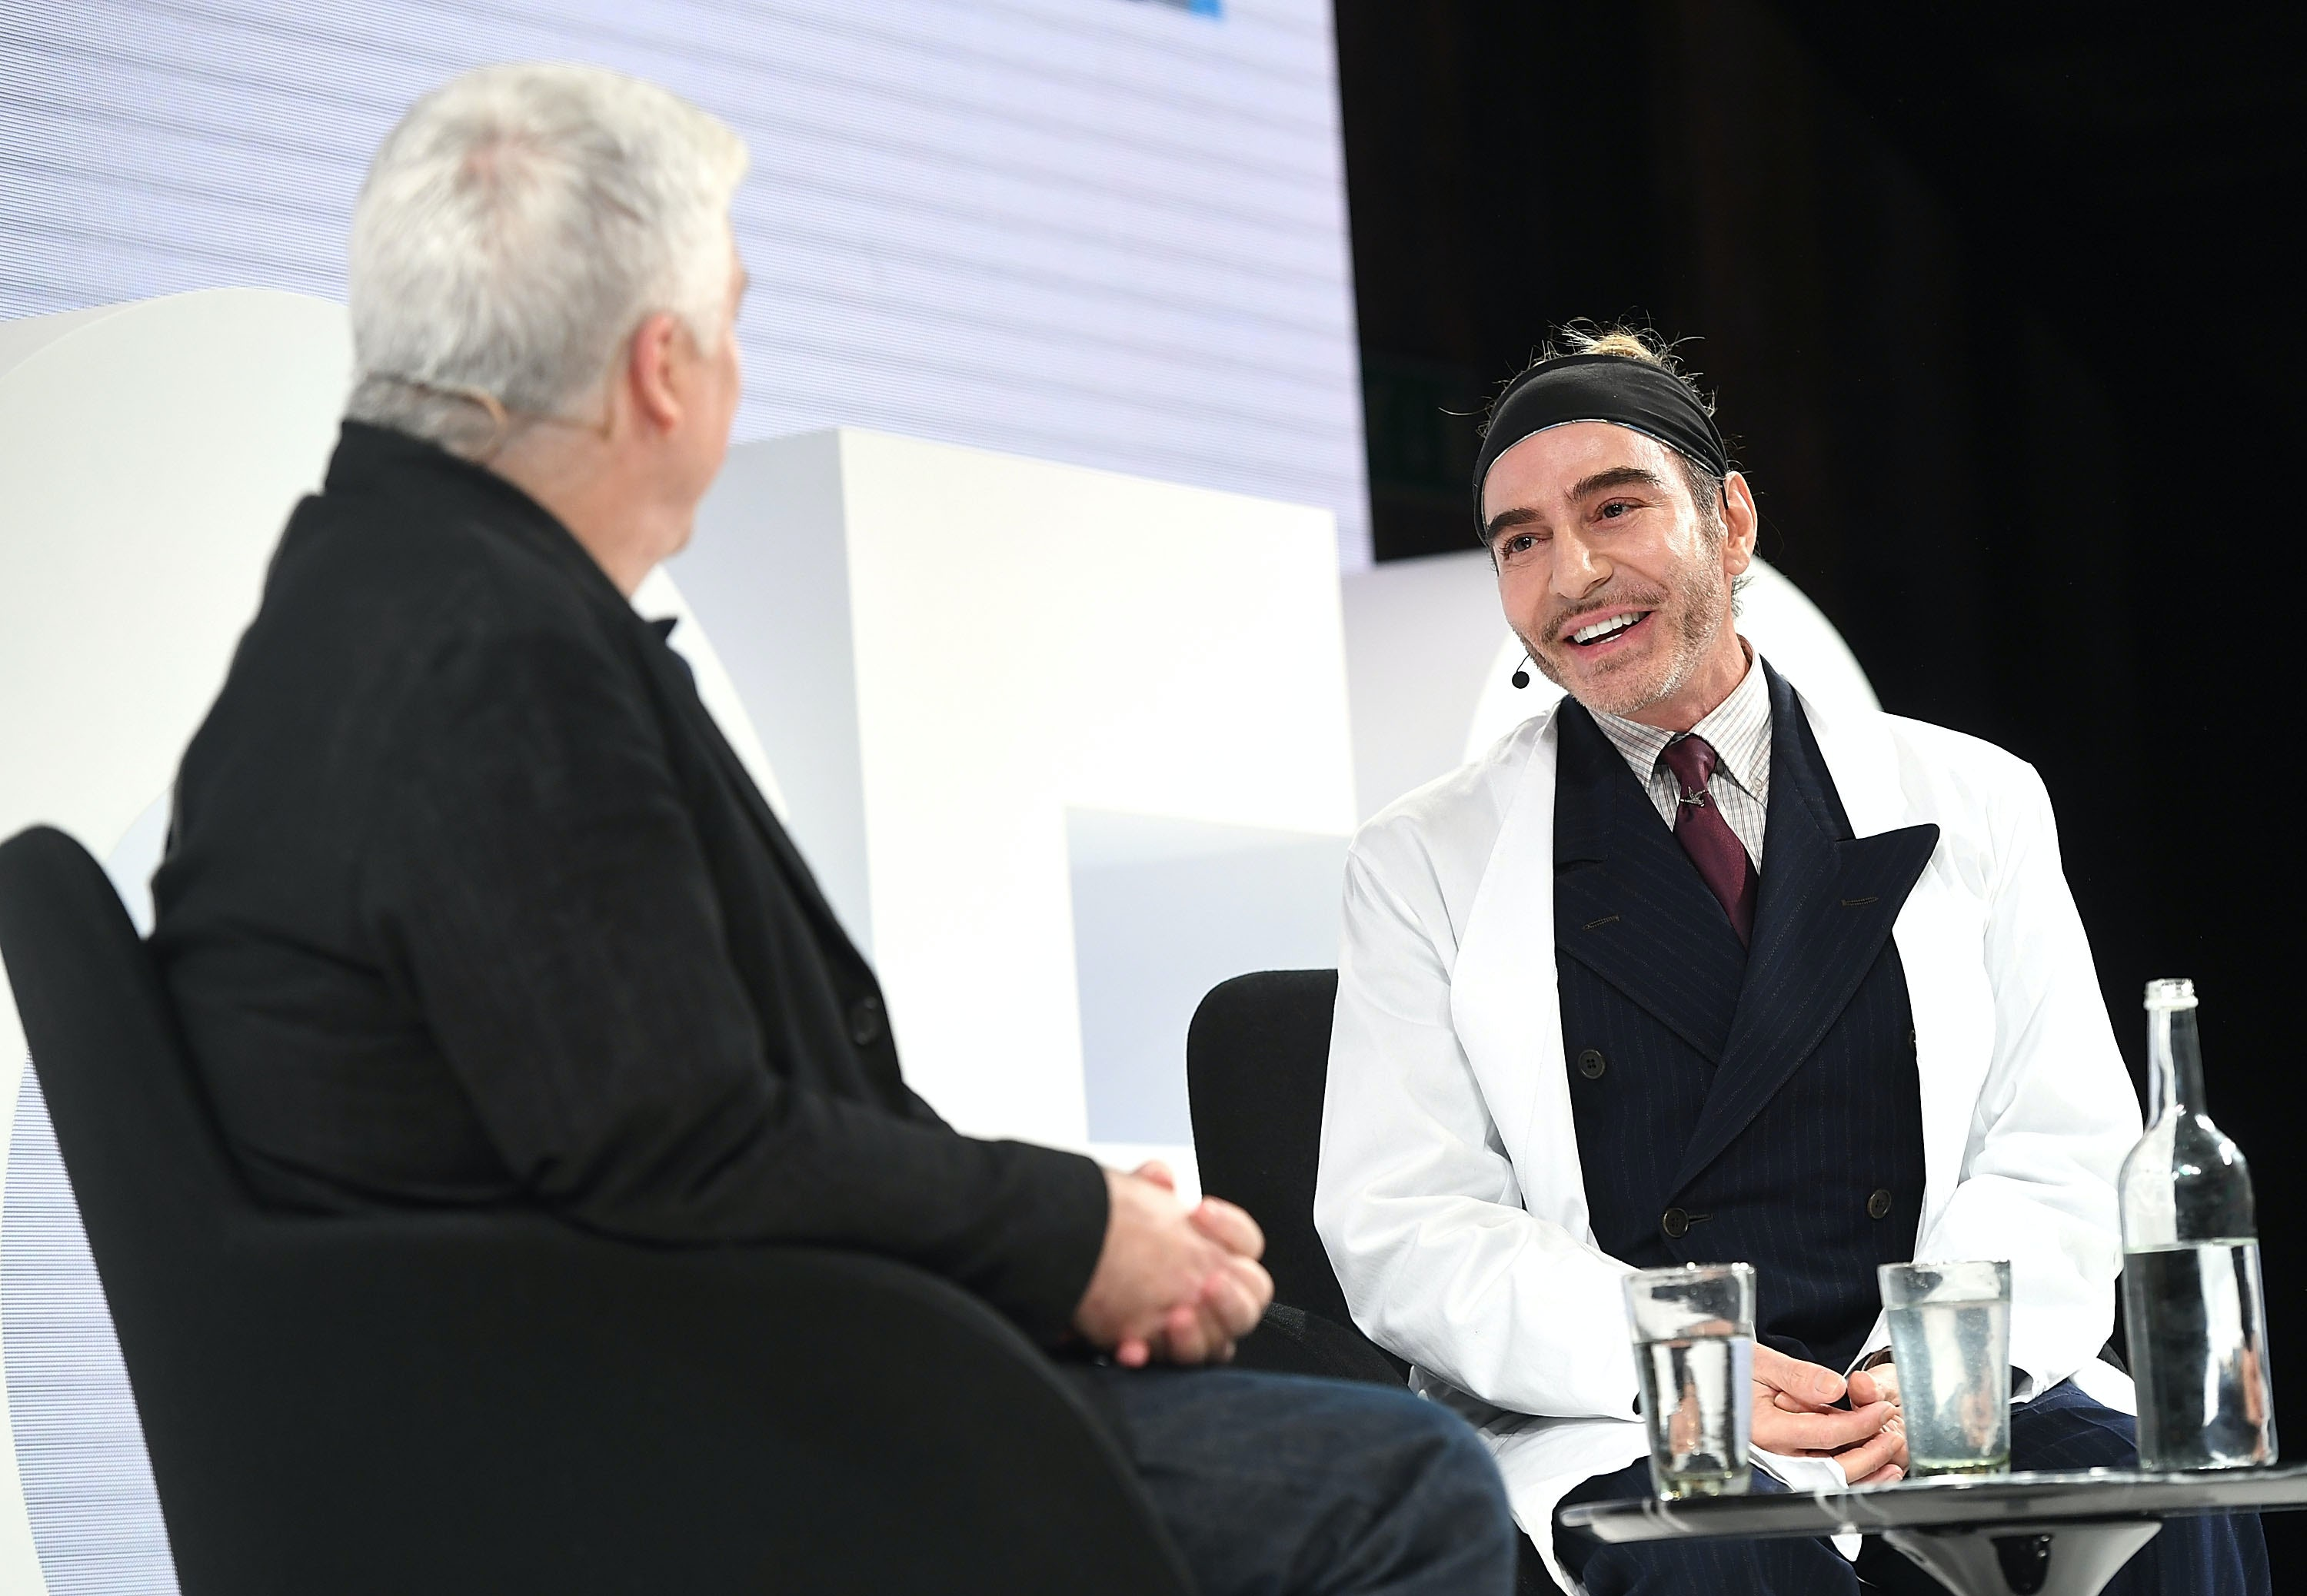 John Galliano in conversation with Tim Blanks on the VOICES stage in December 2016 | Source: Getty